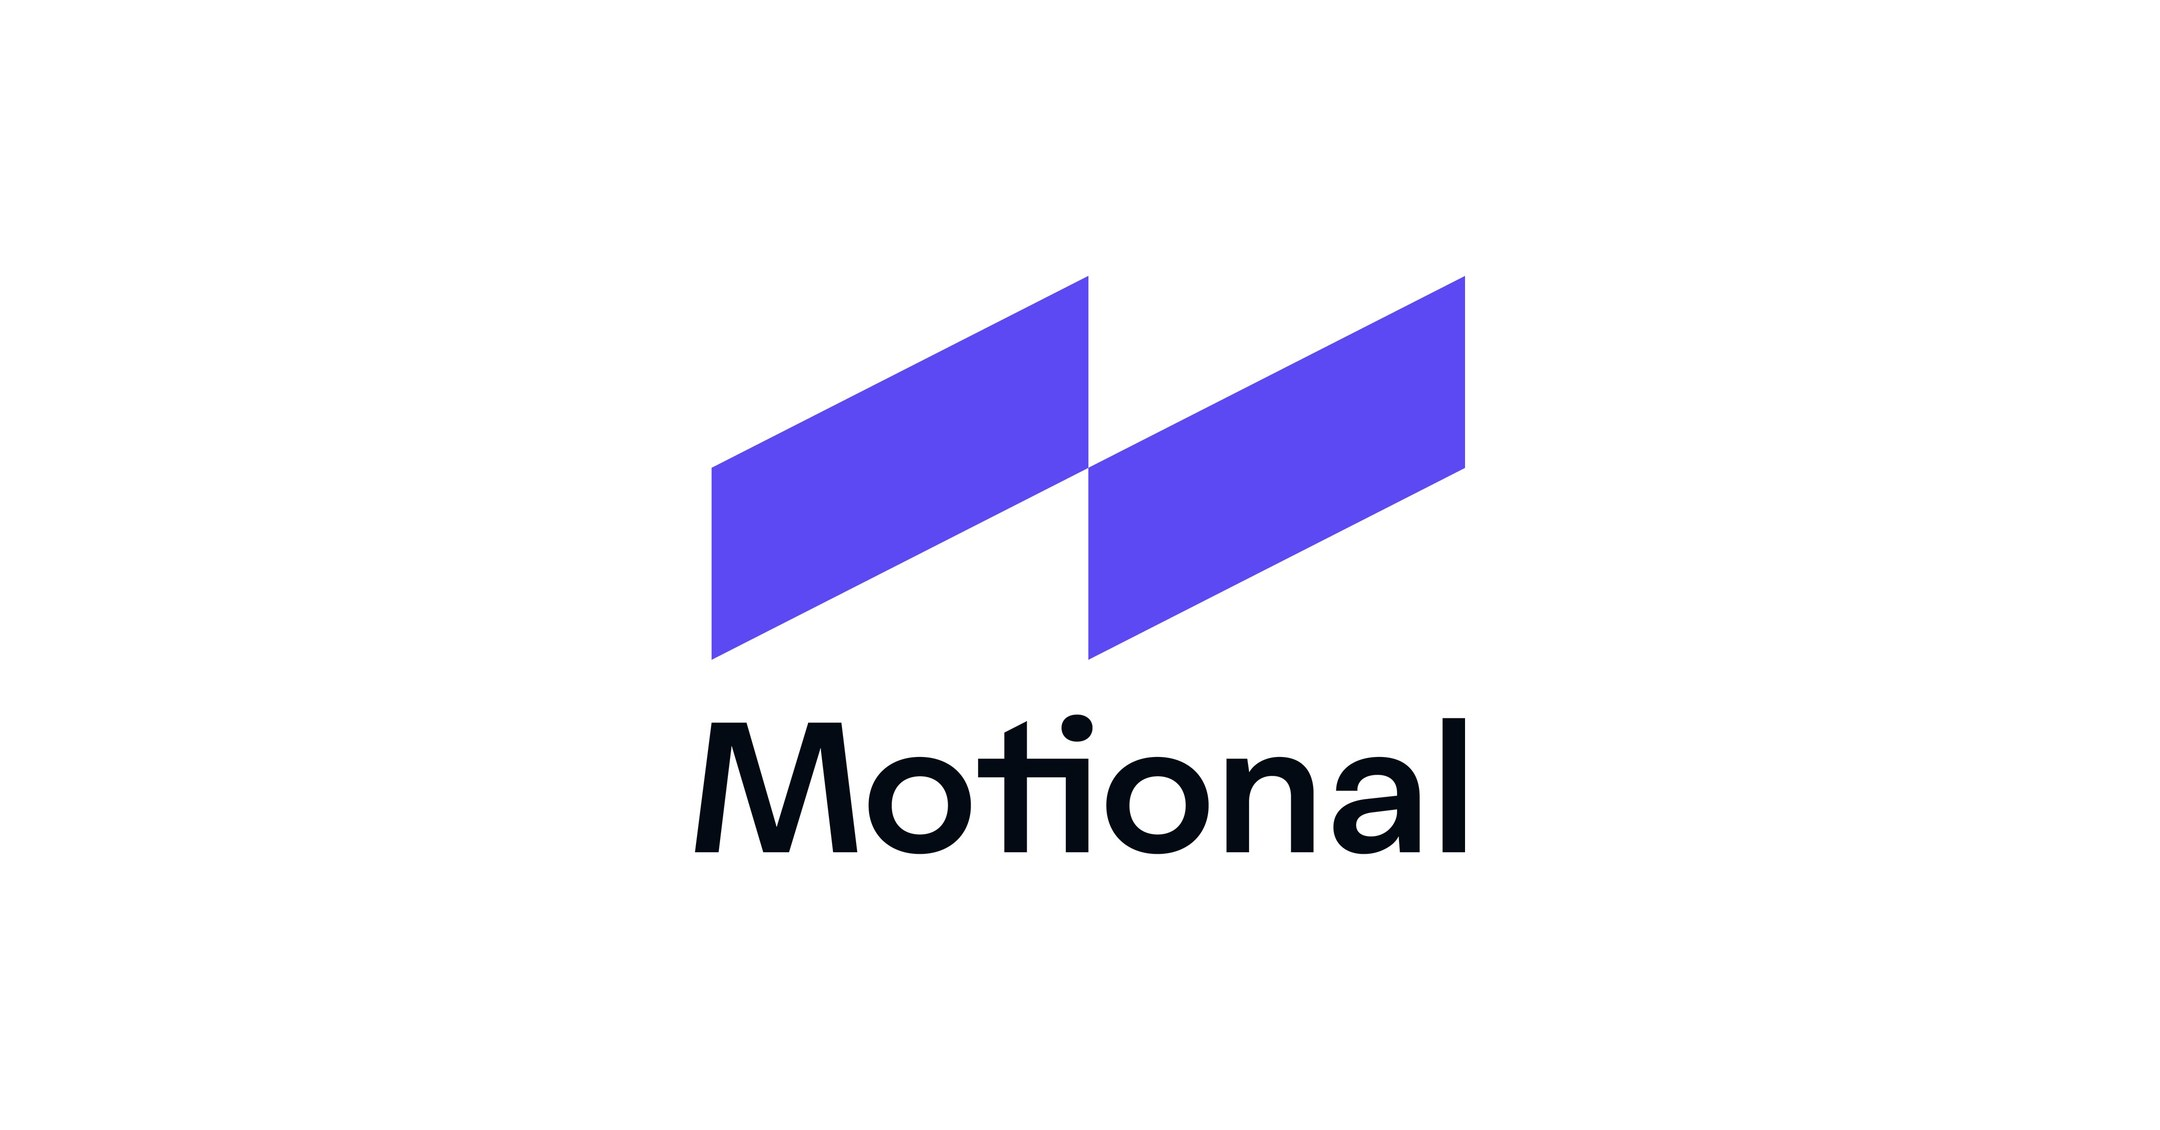 President and CEO at Motional